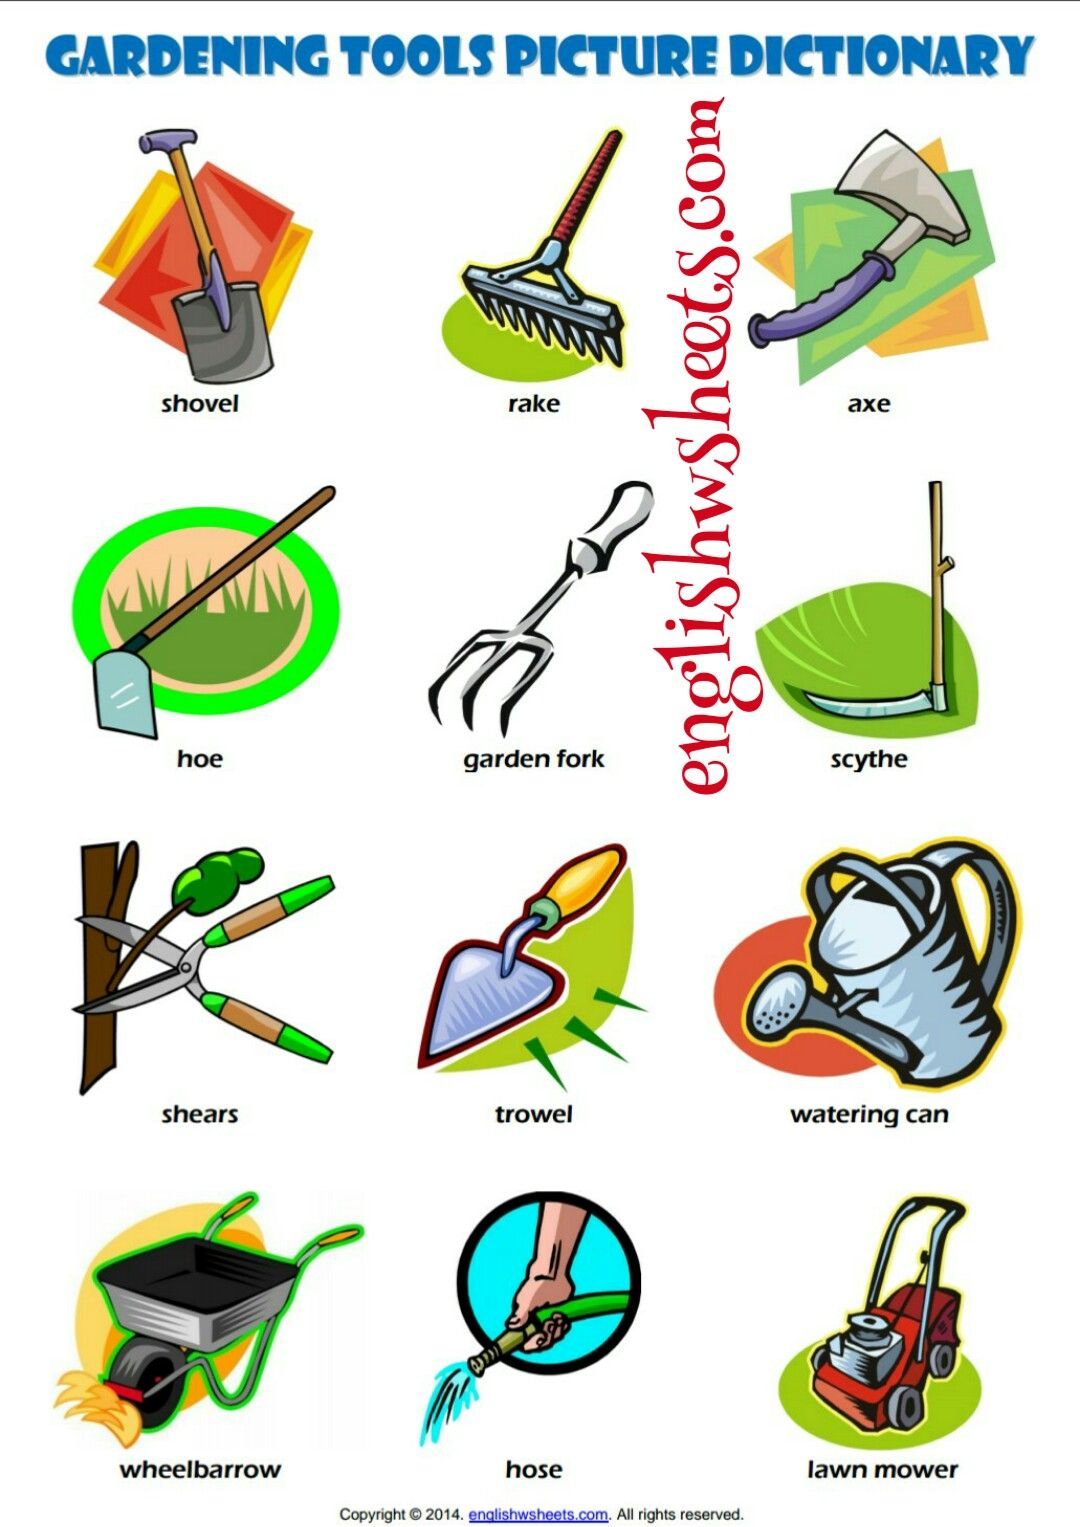 Gardening Tools Vocabulary Matching Worksheet